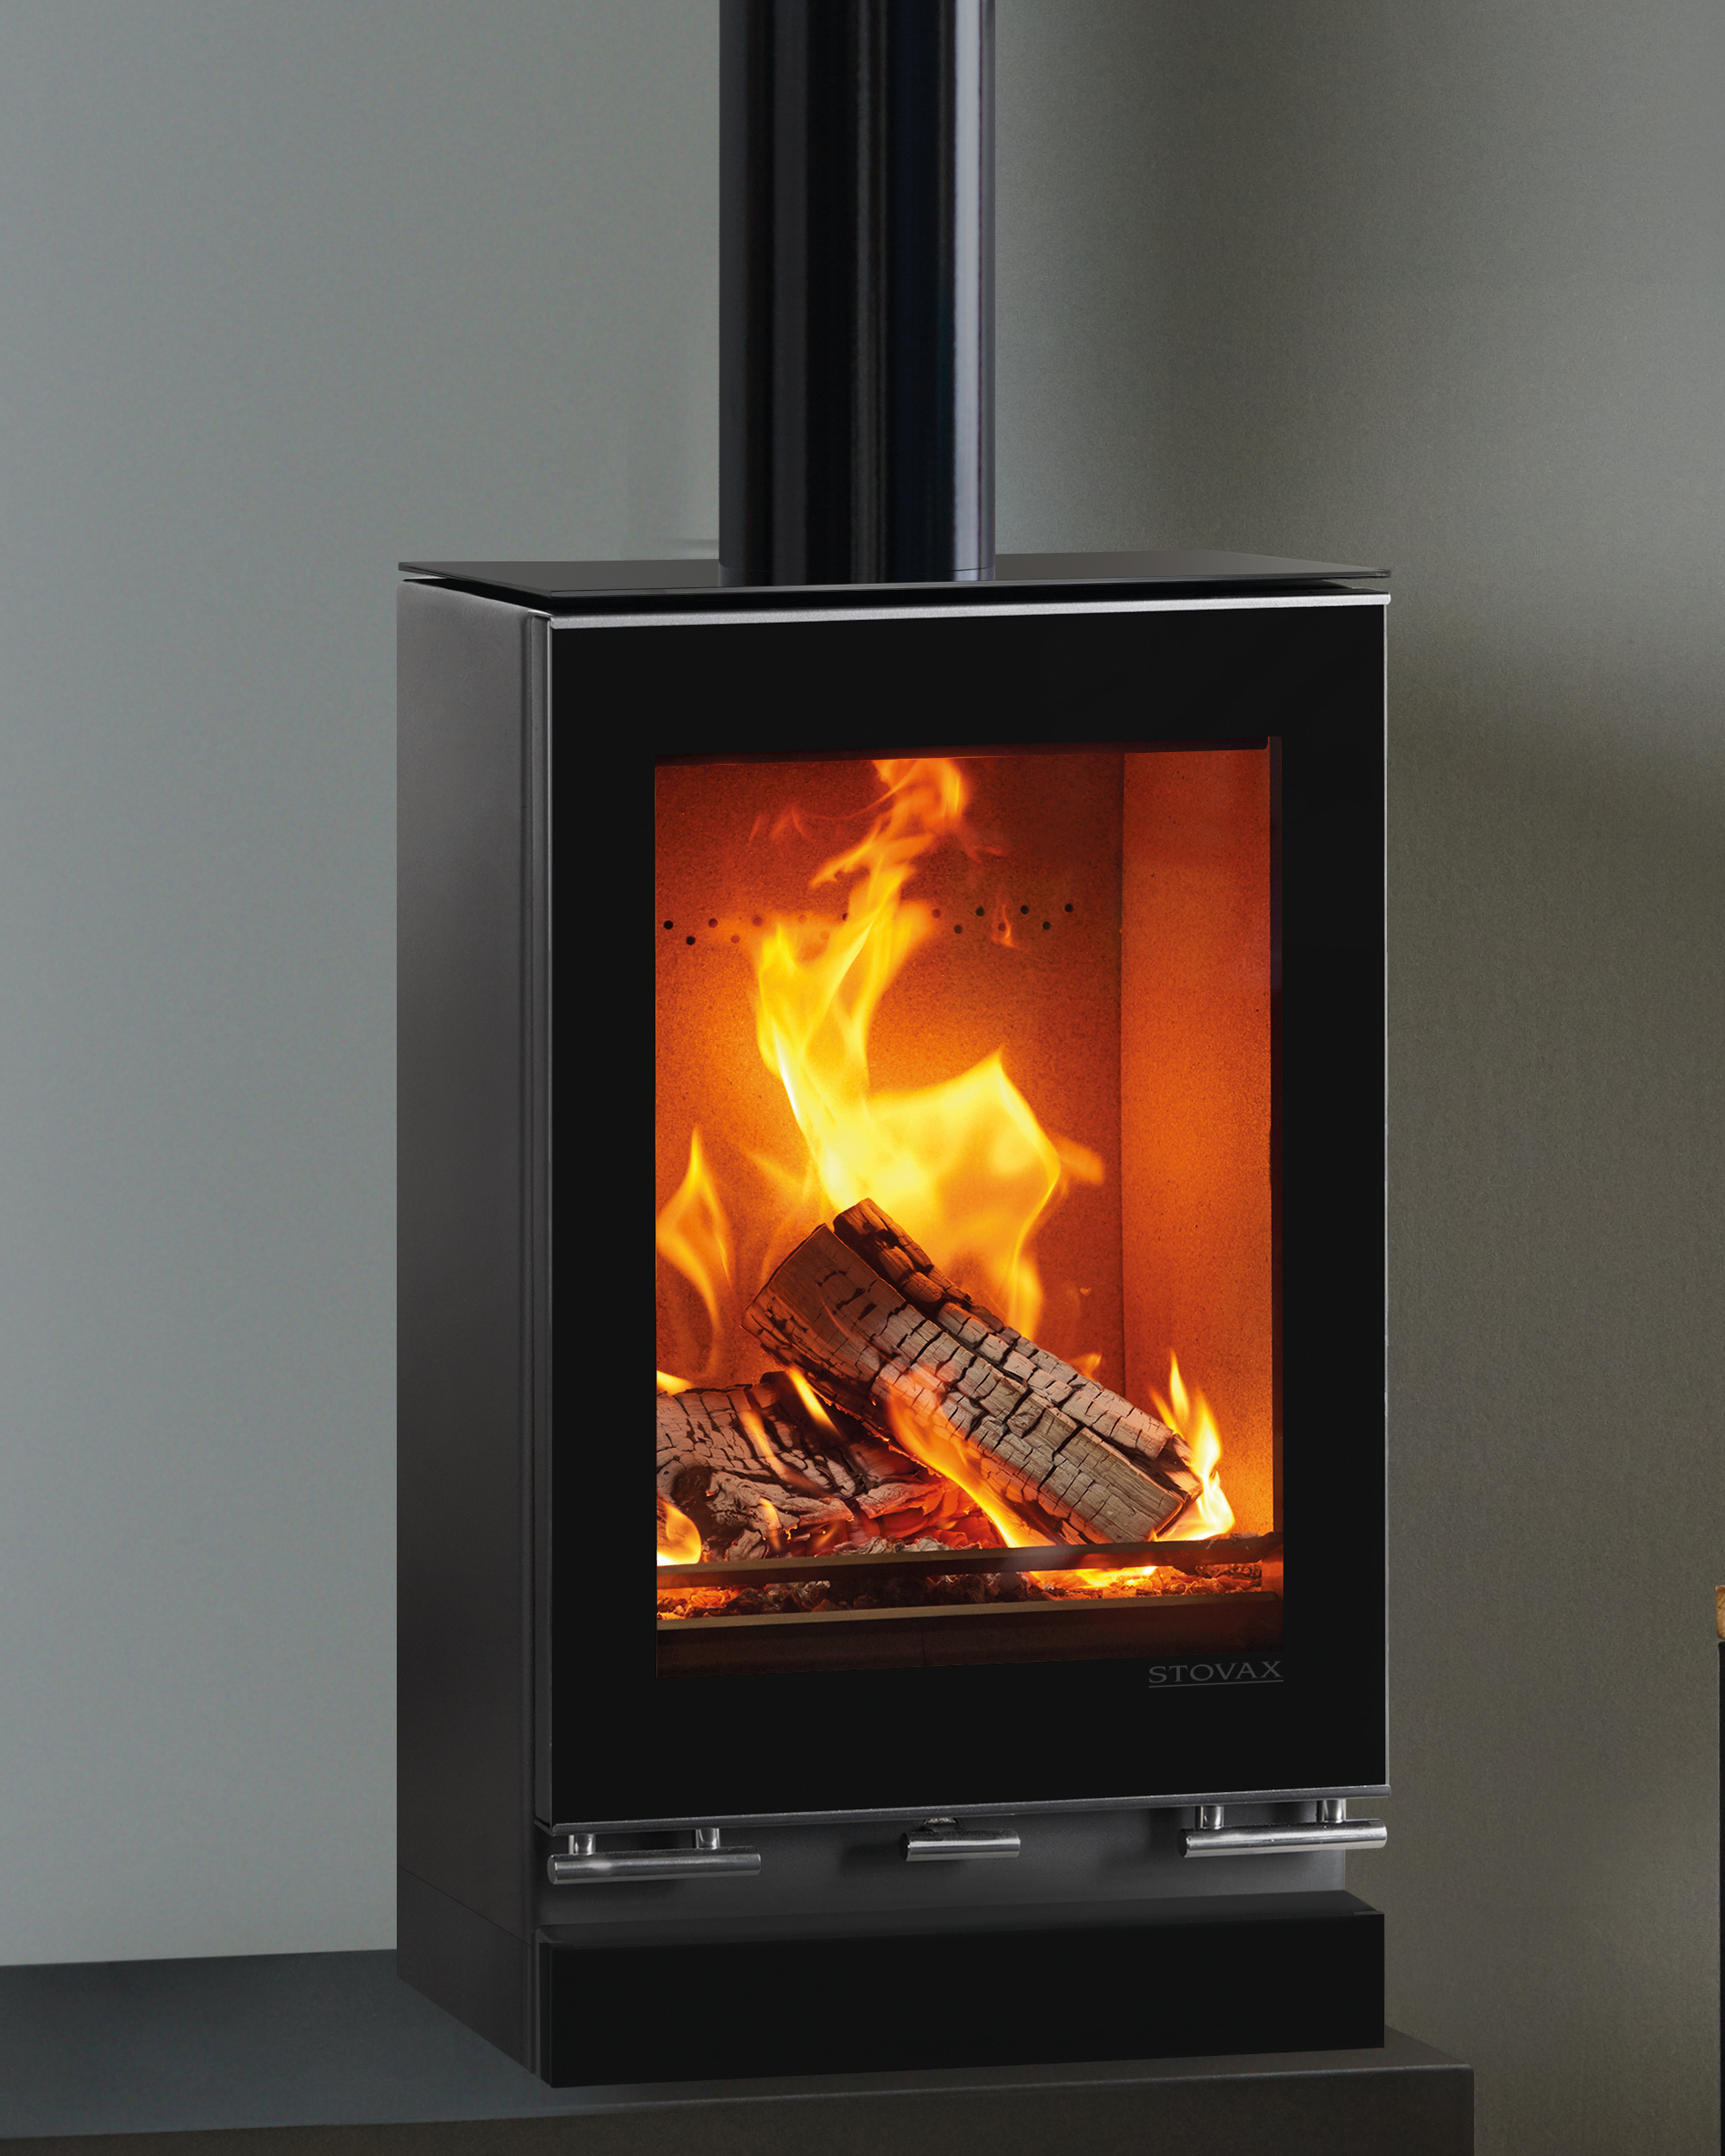 Stovax Riva Vision Small T Eco Fire Wood Burning Stove